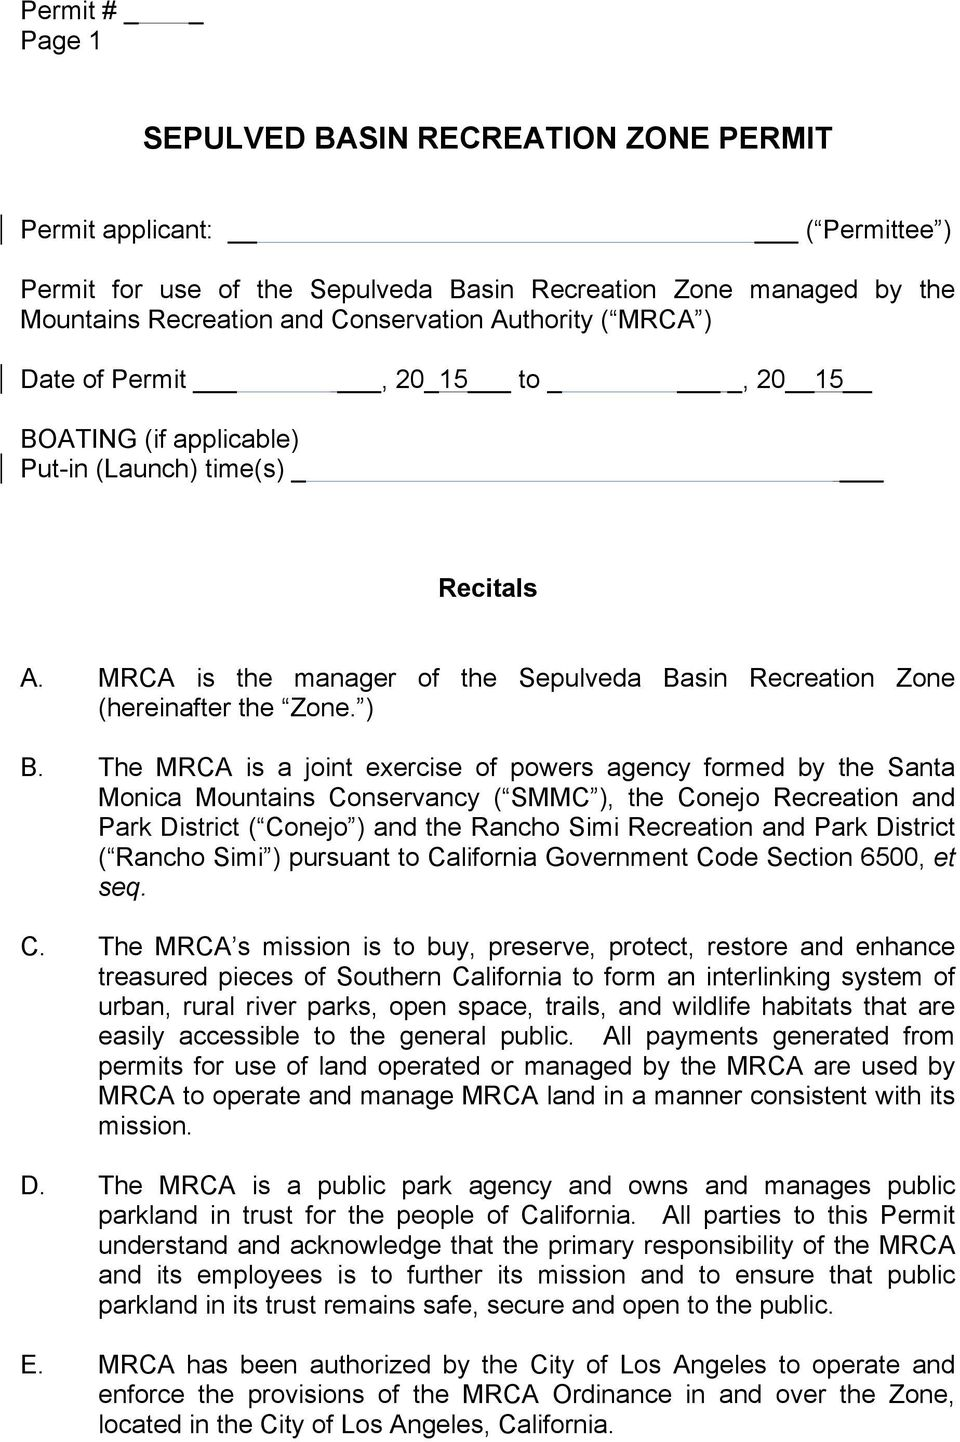 The MRCA is a joint exercise of powers agency formed by the Santa Monica Mountains Conservancy ( SMMC ), the Conejo Recreation and Park District ( Conejo ) and the Rancho Simi Recreation and Park